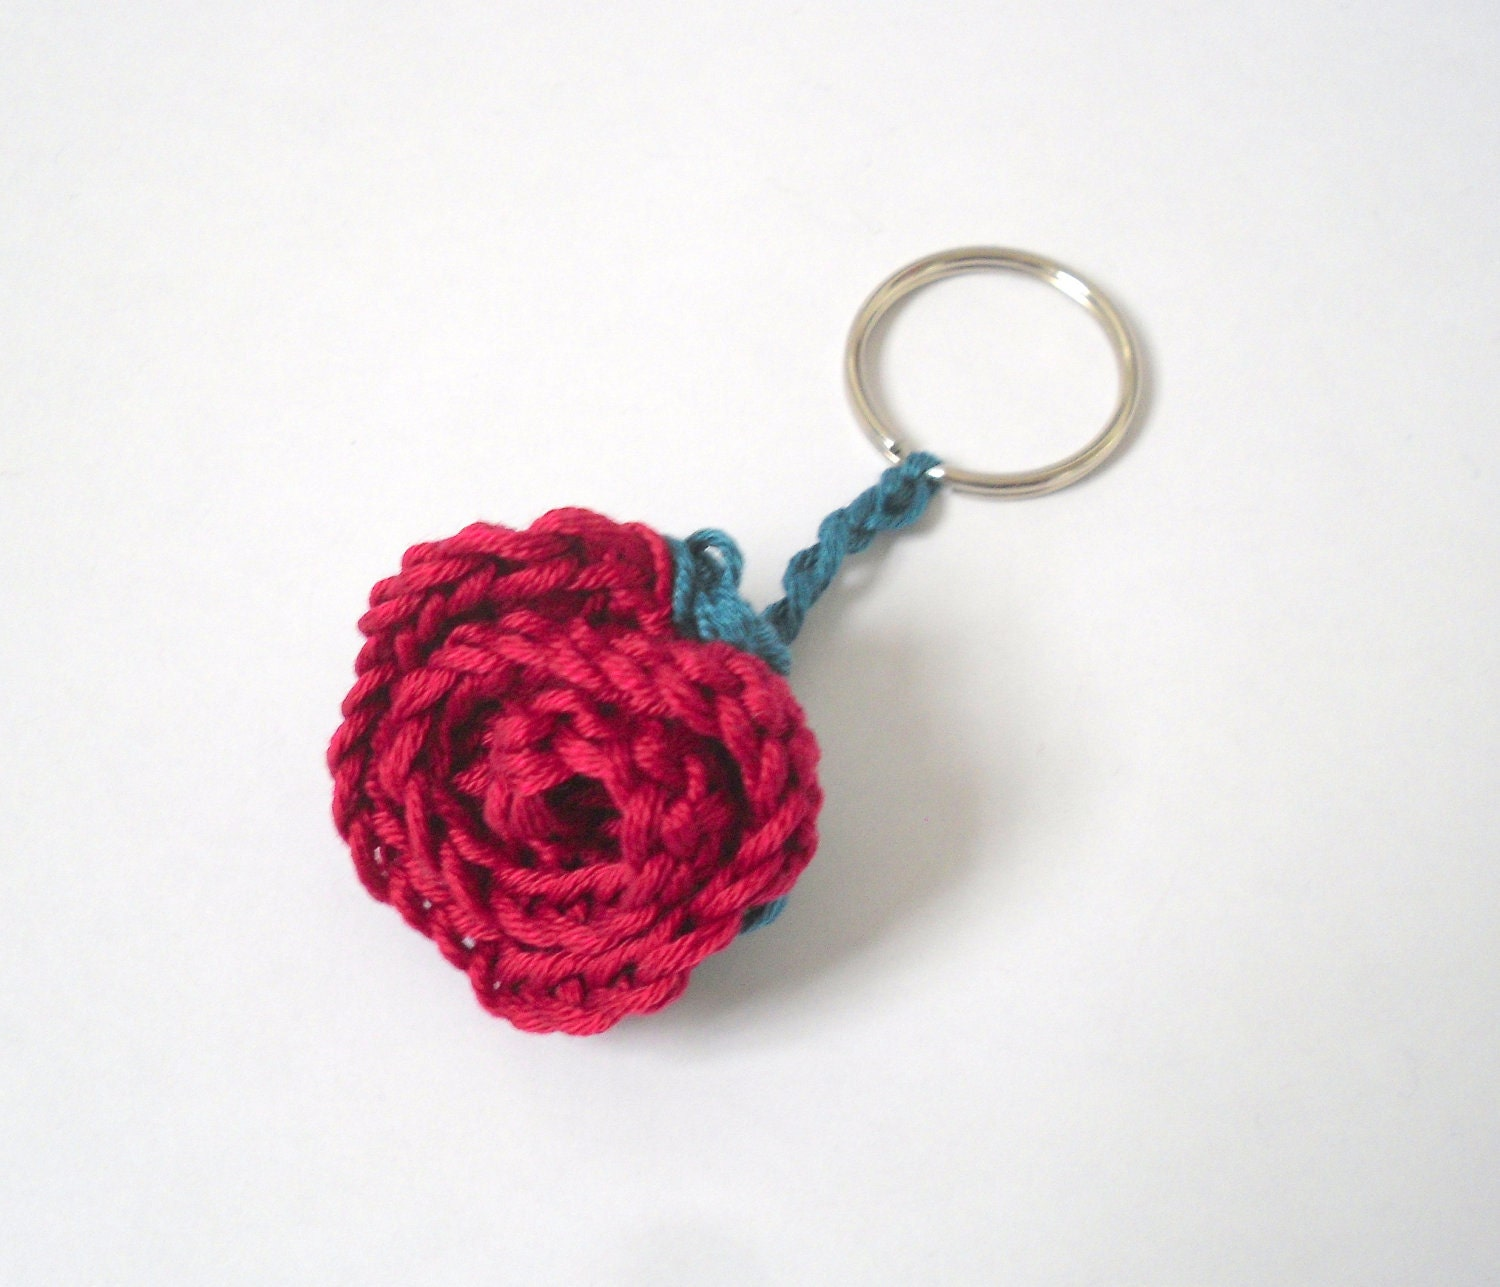 Crochet Keychain : Flower Crochet Keyring Red Rose with Green by StitchHappyLottie